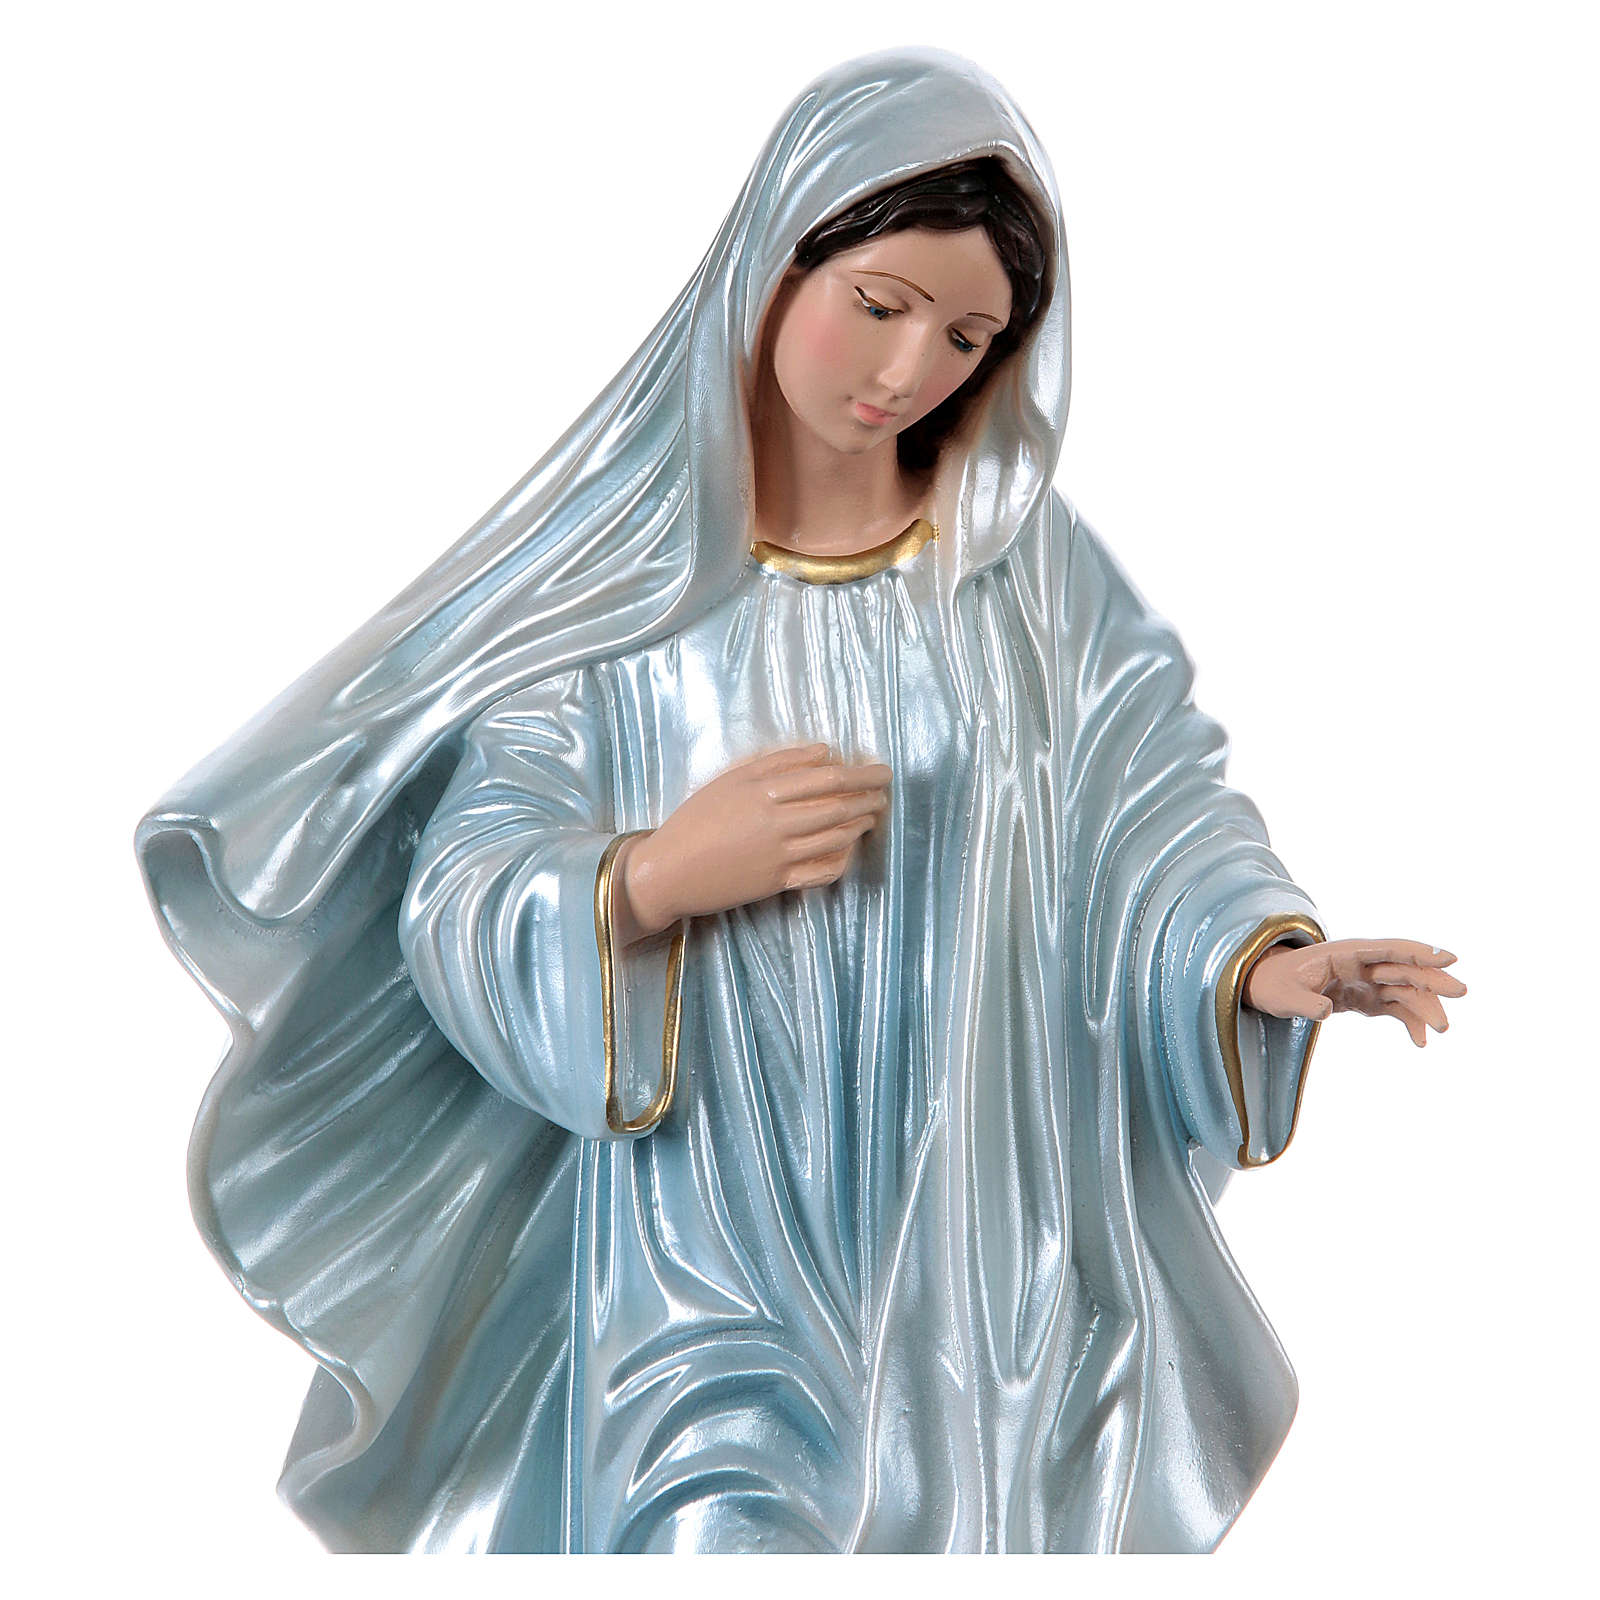 Our Lady of Medjugorje 40 cm in mother-of-pearl plaster 4